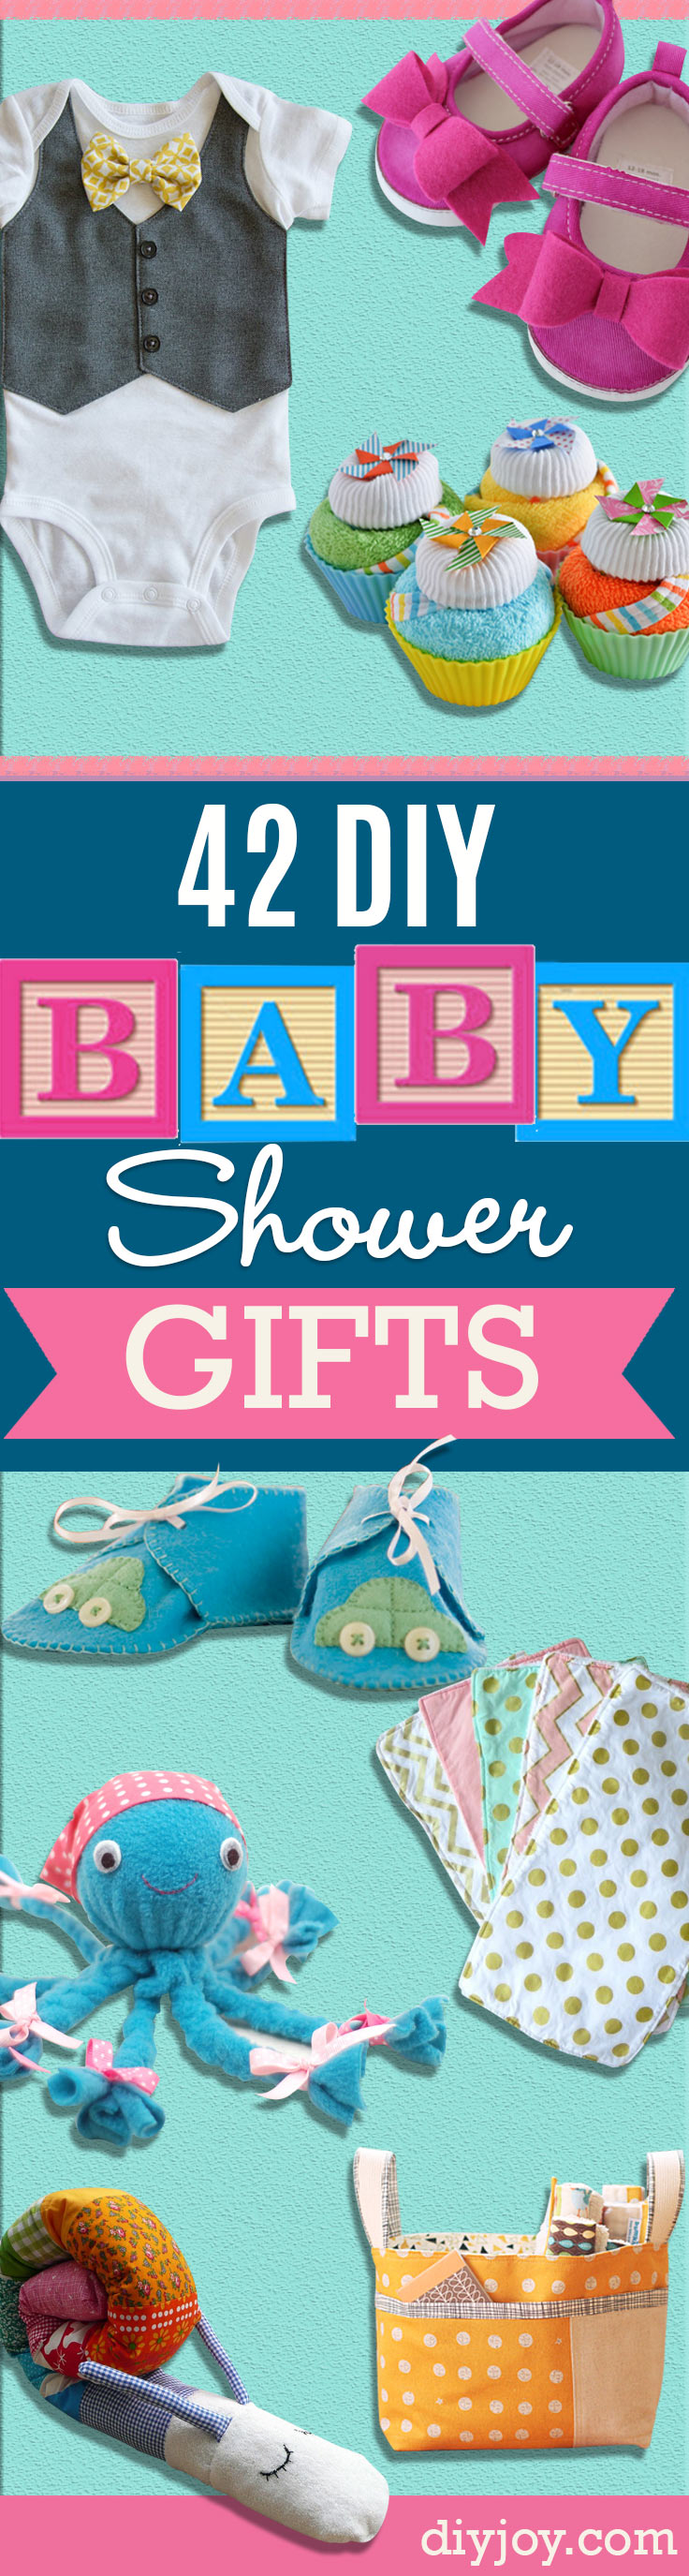 baby lede unique strategist best good gifts personalized shower